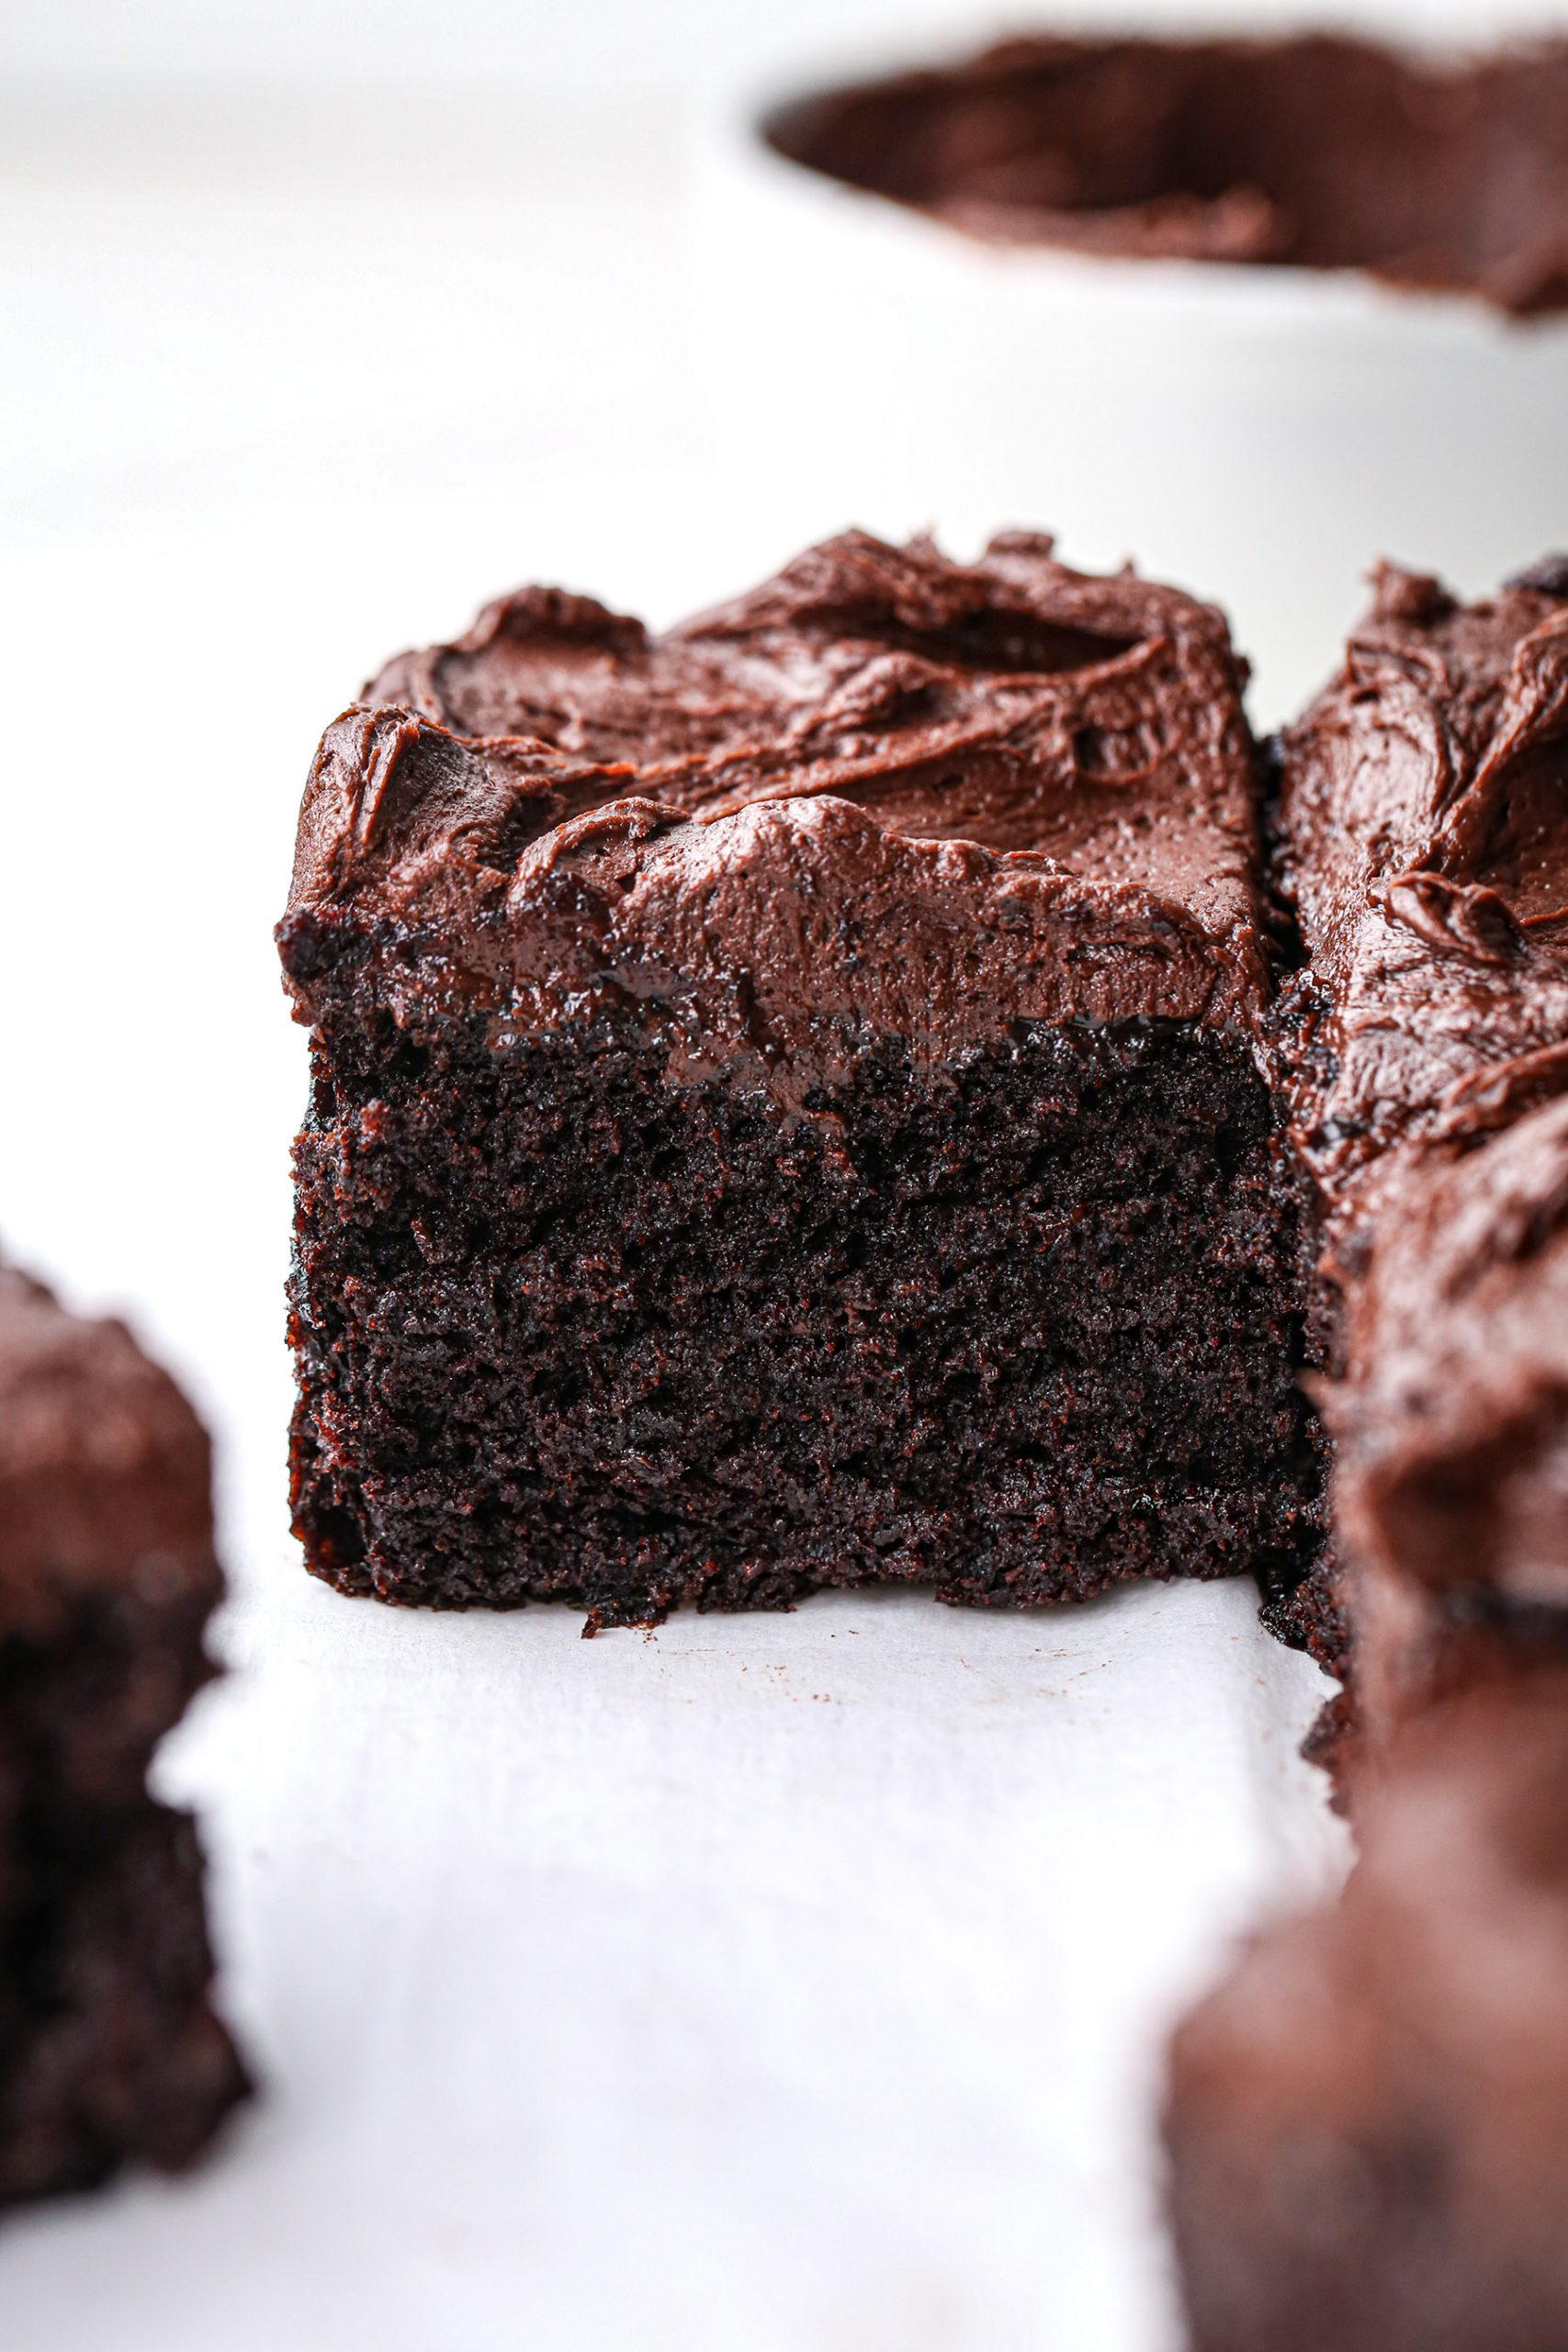 Chocolate Snack Cake with Chocolate Buttercream | Vegan with Gluten Free and Refined Sugar Free Option